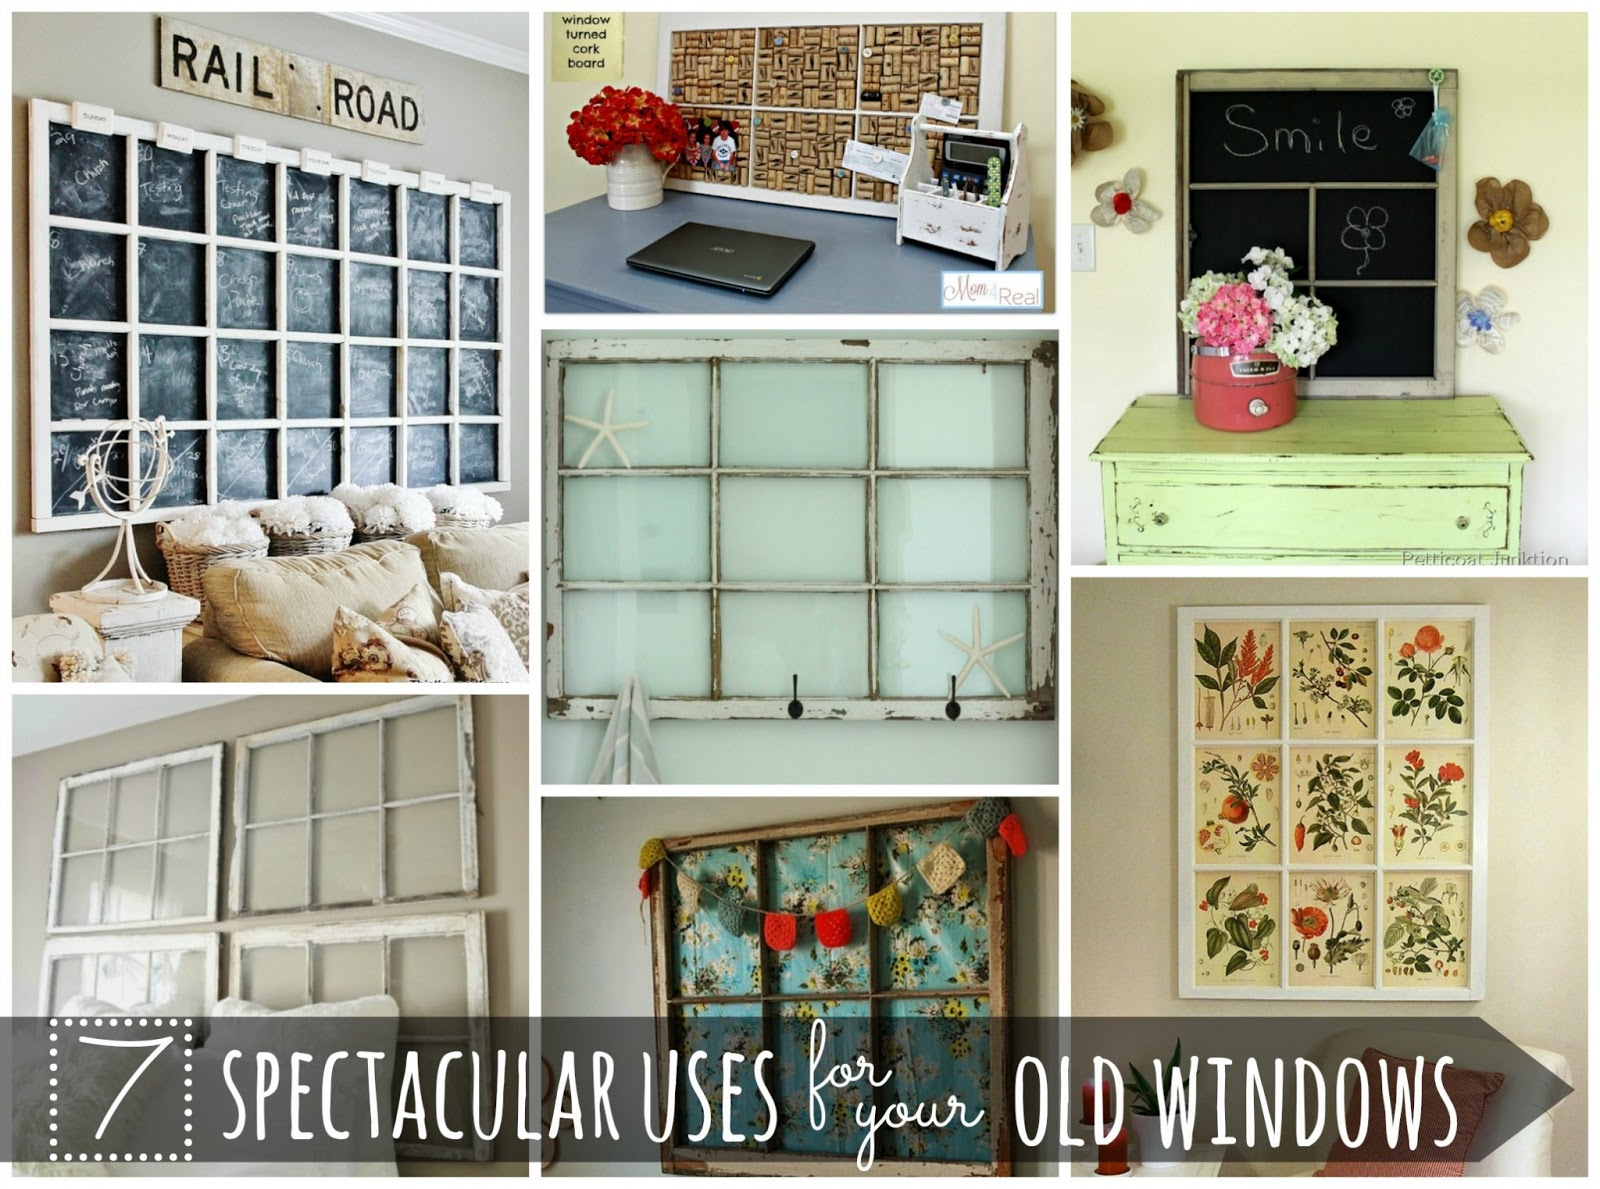 7 Spectacular Uses For Old Windows